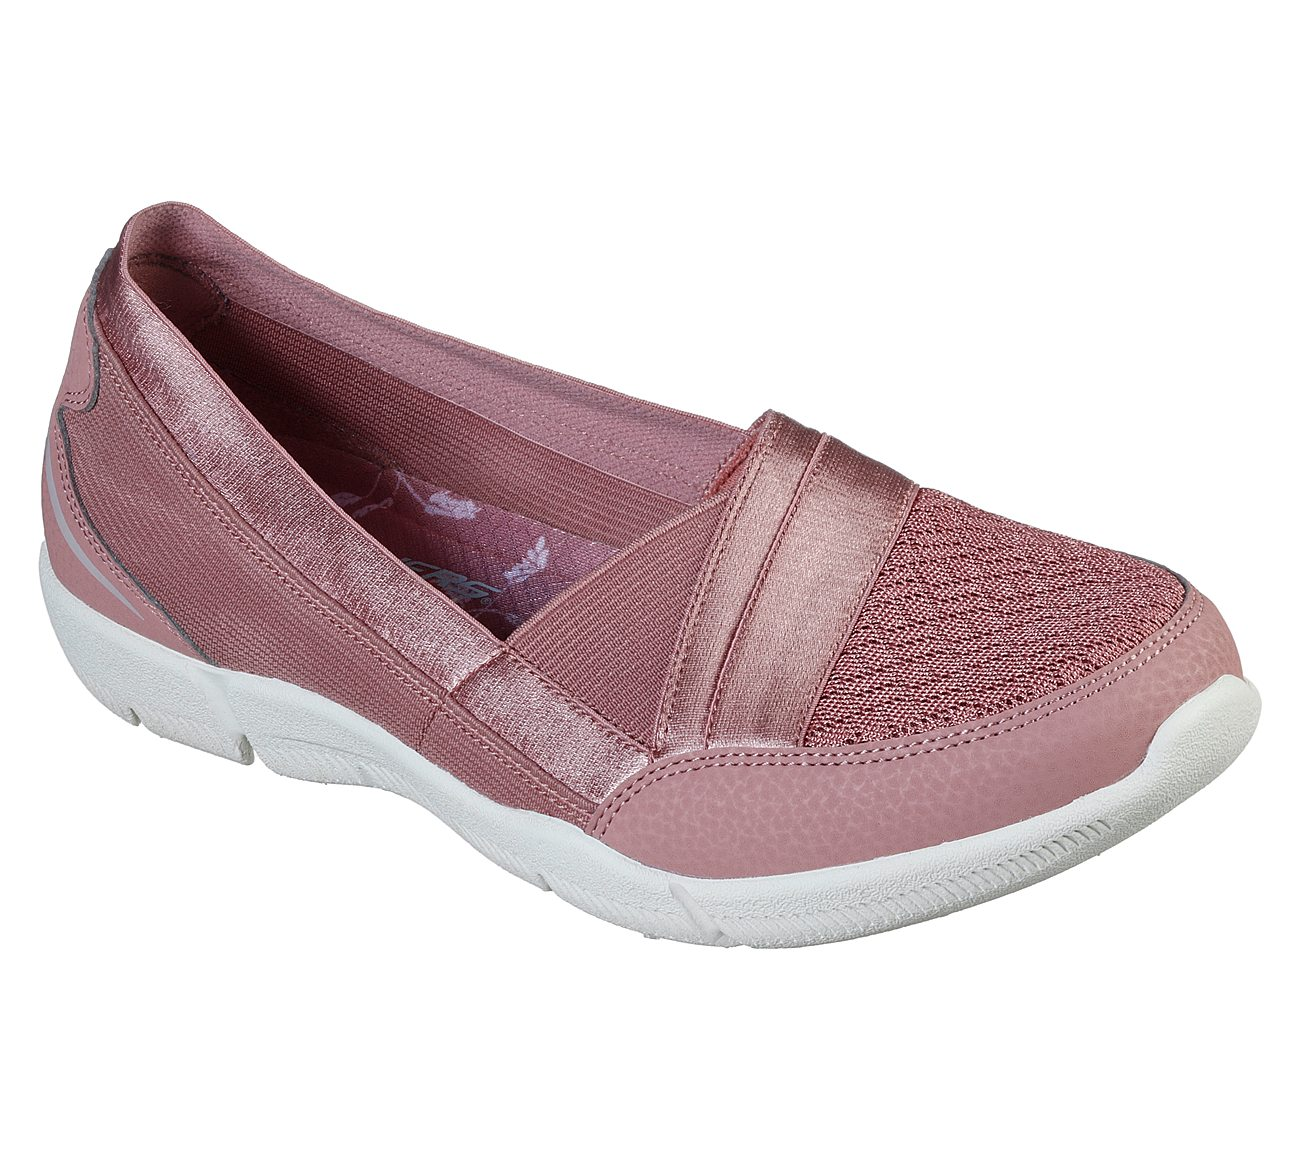 Women's Skechers | Trainers, Shoes